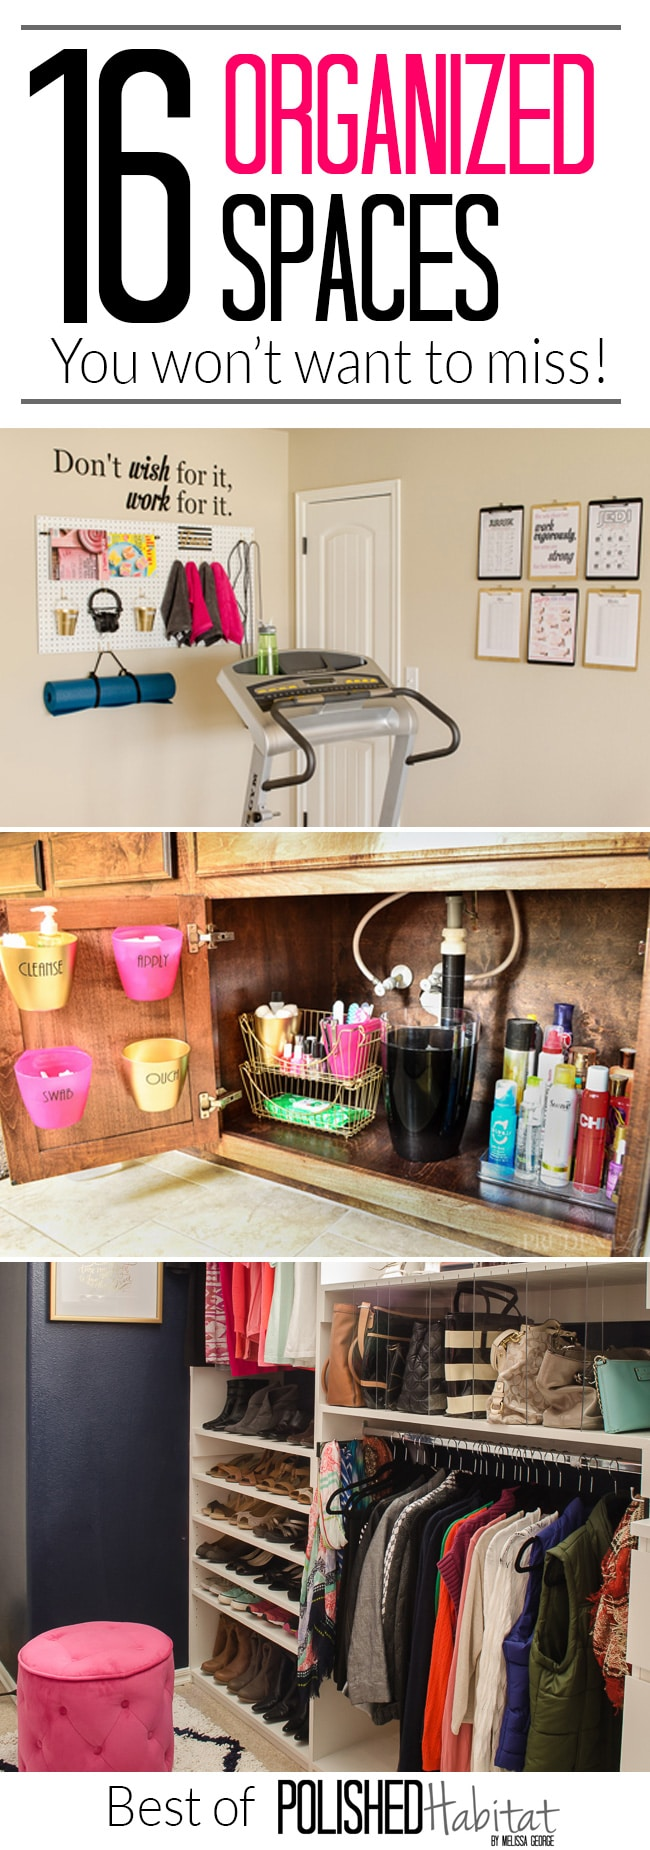 Organization Ideas For Almost Every Room! Control clutter WITHOUT becoming a minimalist with the top 16 organizing ideas from Polished Habitat.